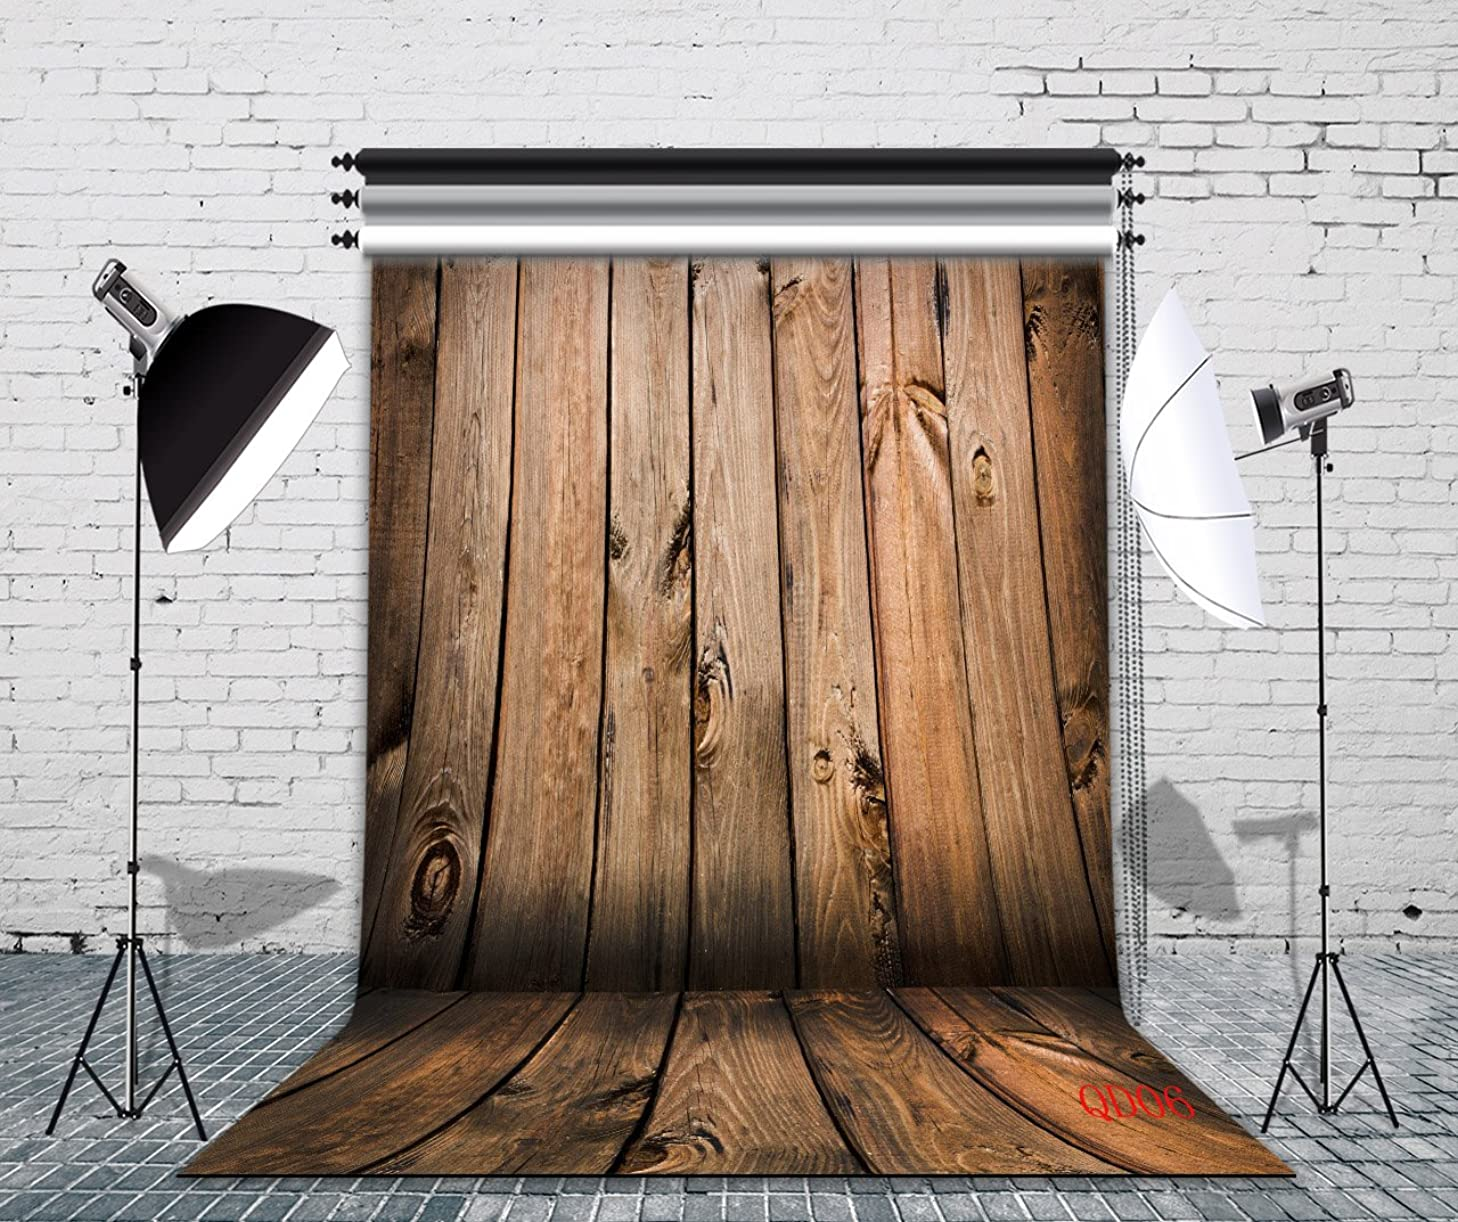 LB Rustic Wood Floor Backdrop for Photography 6x9ft Polyester Fabric Wooden Wall Photo Backdrop for Newborn Smash Cake Birthday Party Portraits Photo Studio Background,Seamless Washable